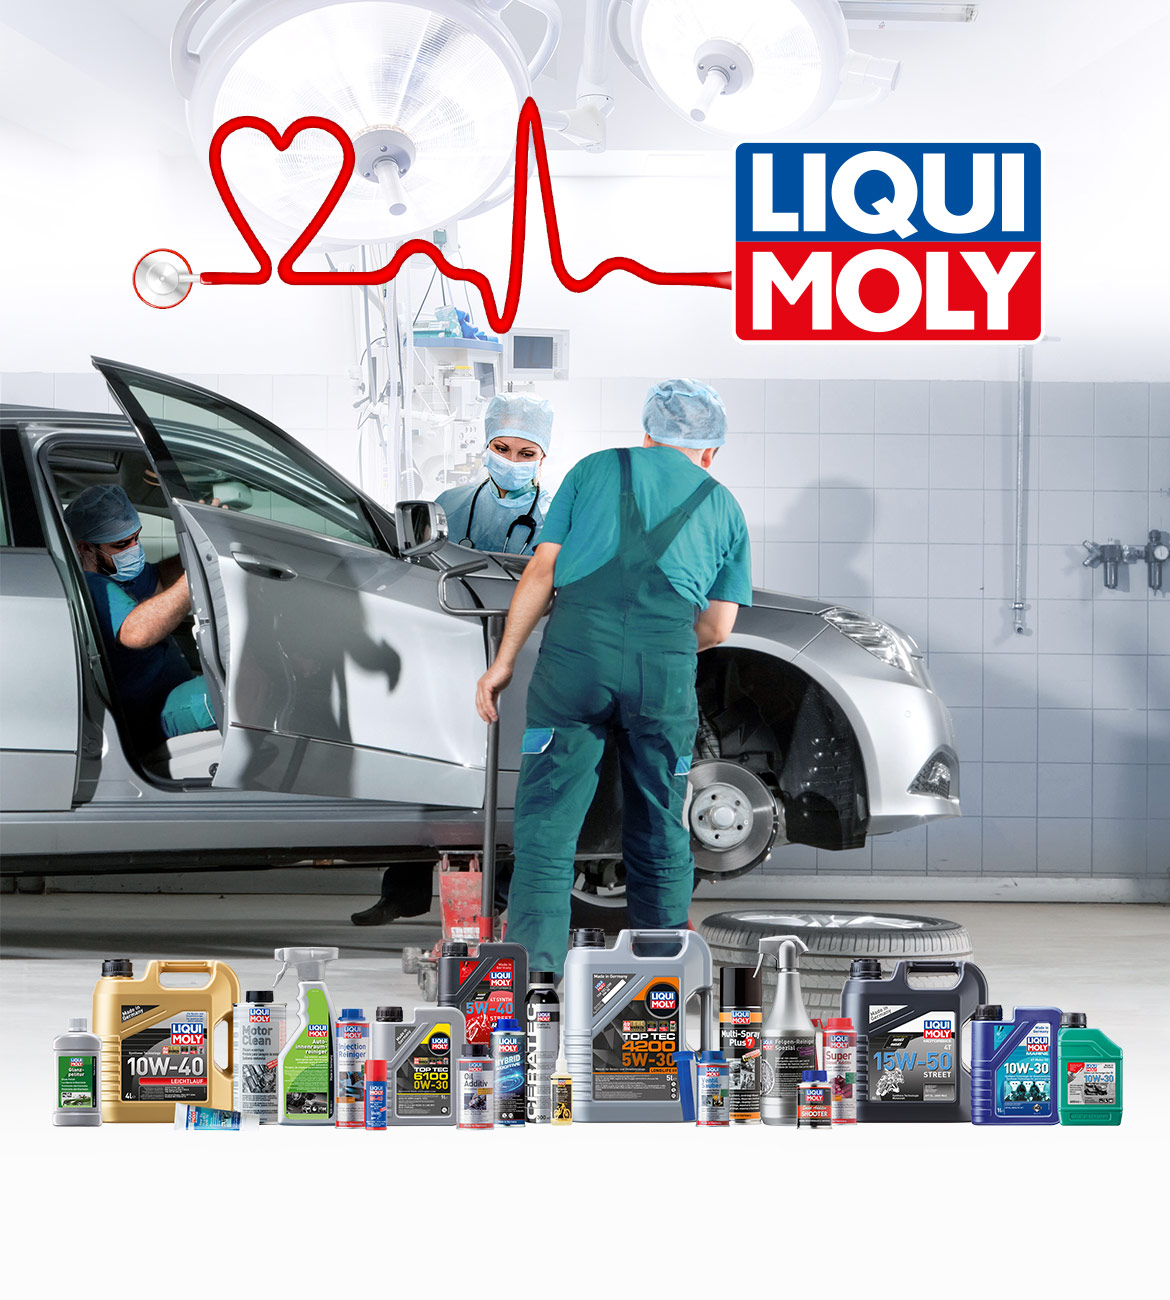 LIQUI MOLY Motiv zum Vollsortiment